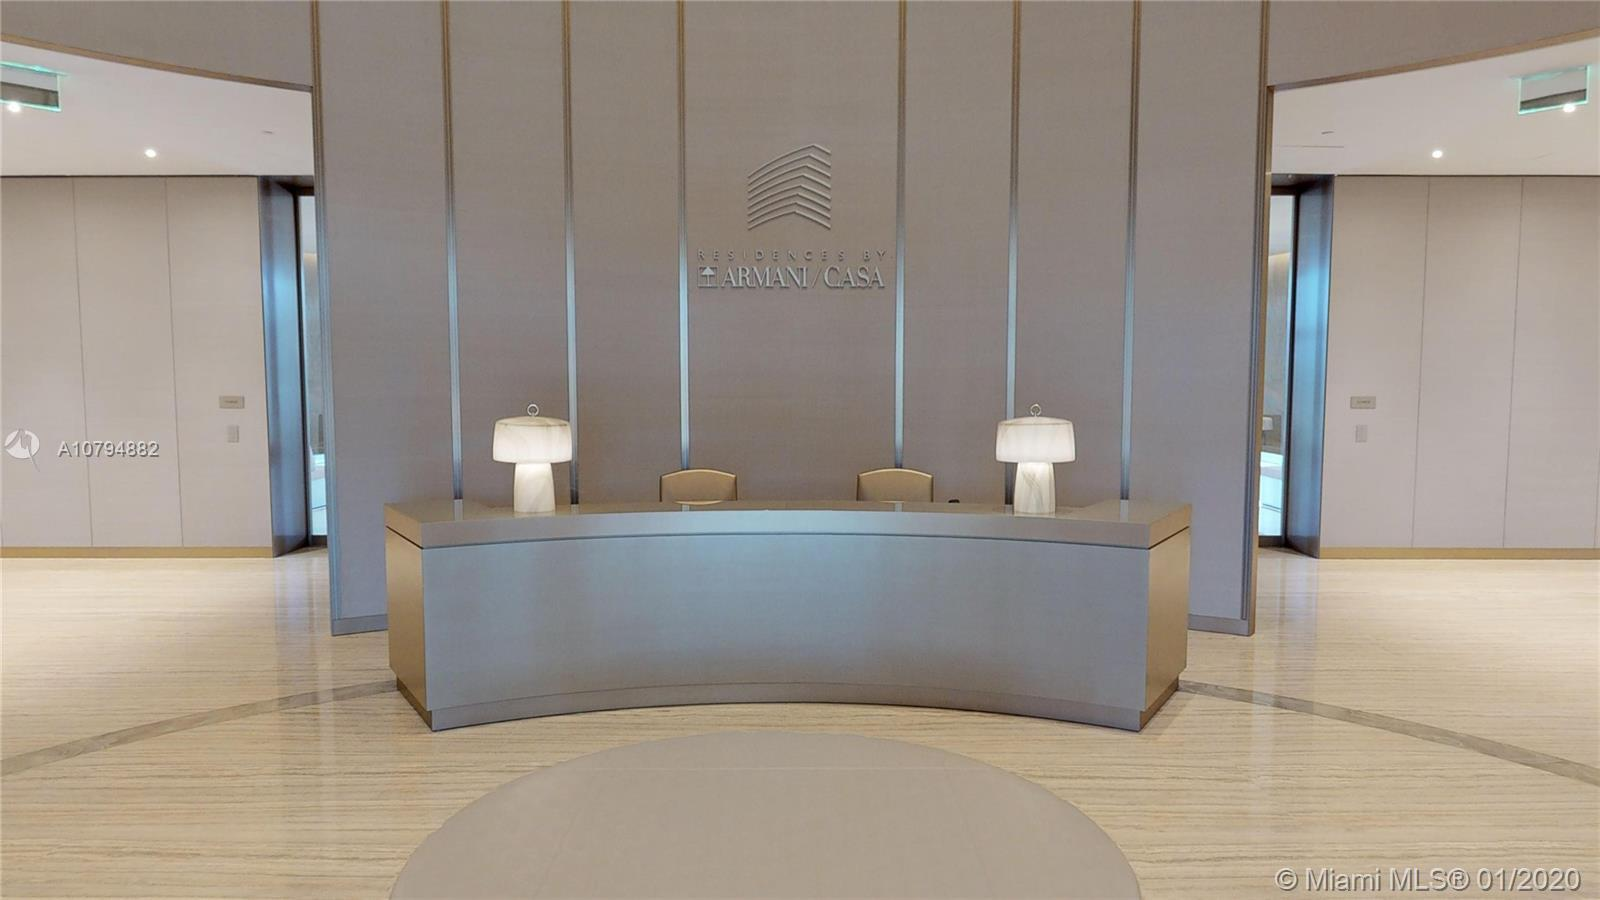 Armani is Sunny Isles most newest and luxurious building. This flow through designer ready unit has